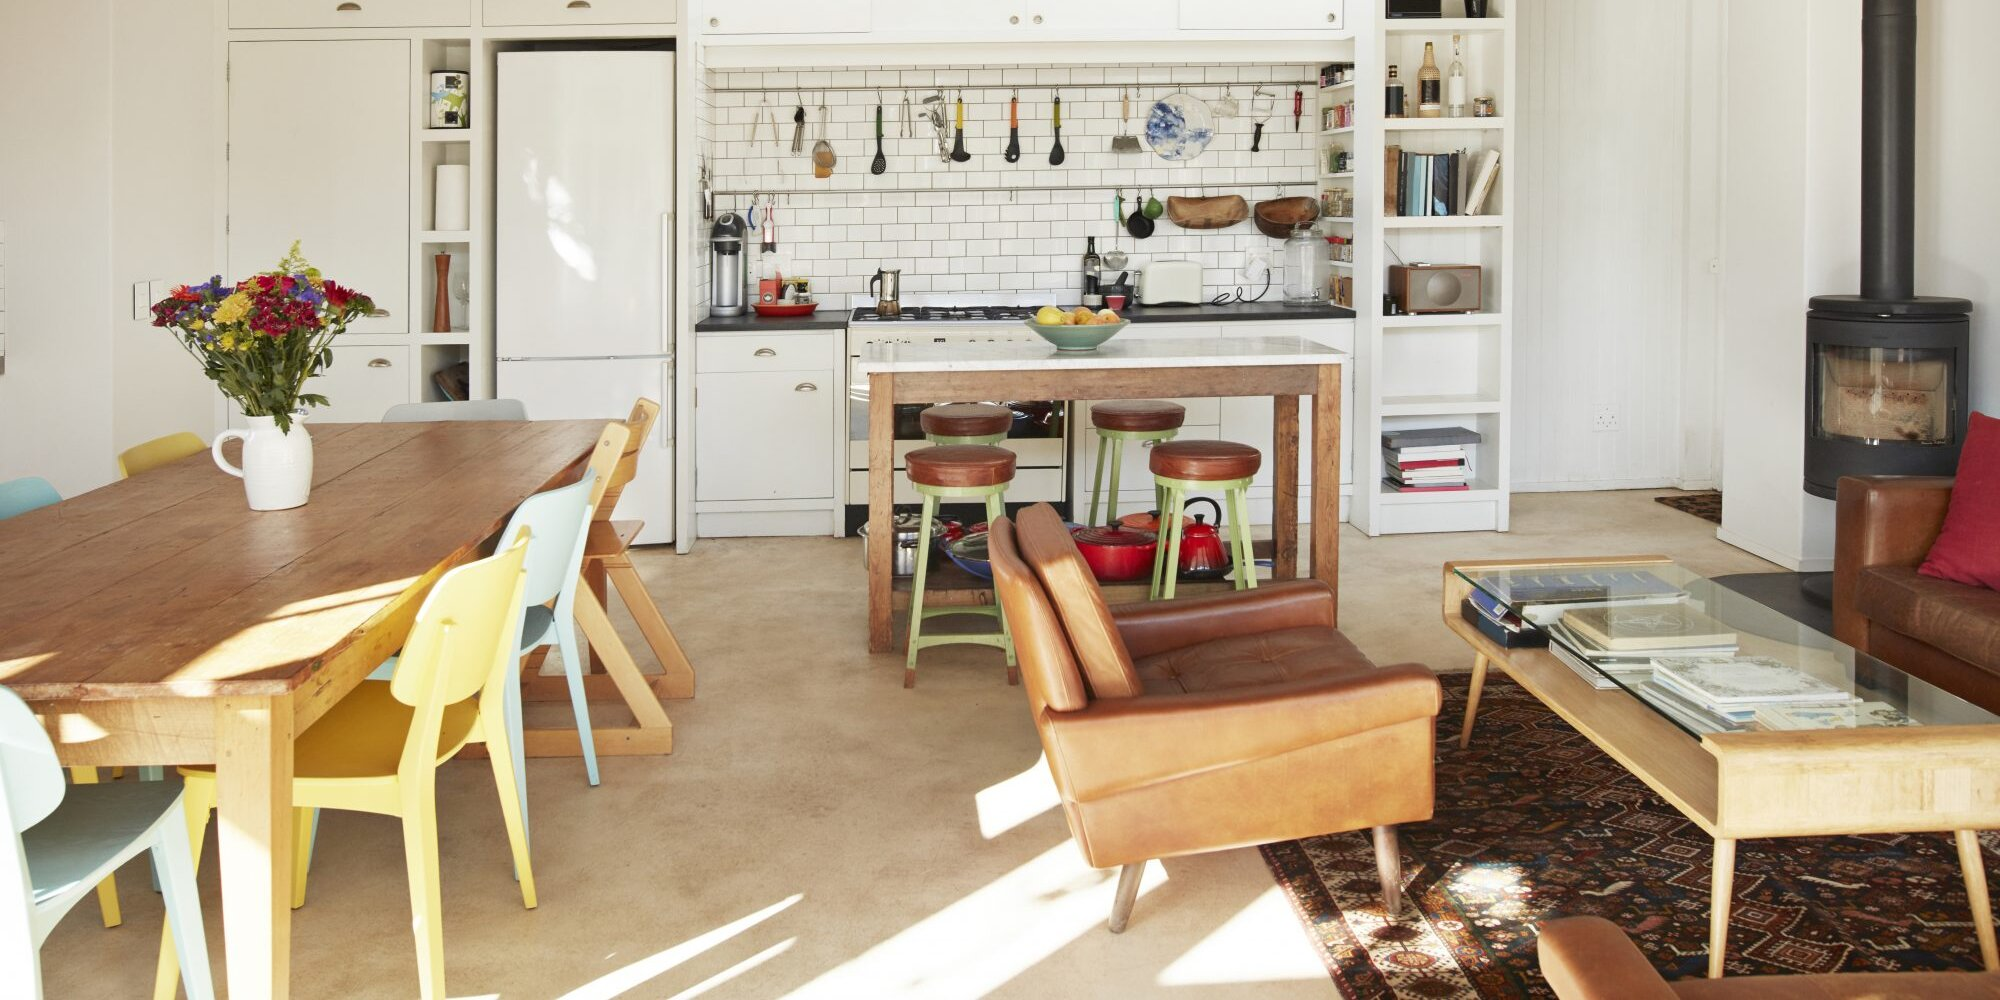 5 Home Design Mistakes We Made in 2020–and Plan to Never Make Again